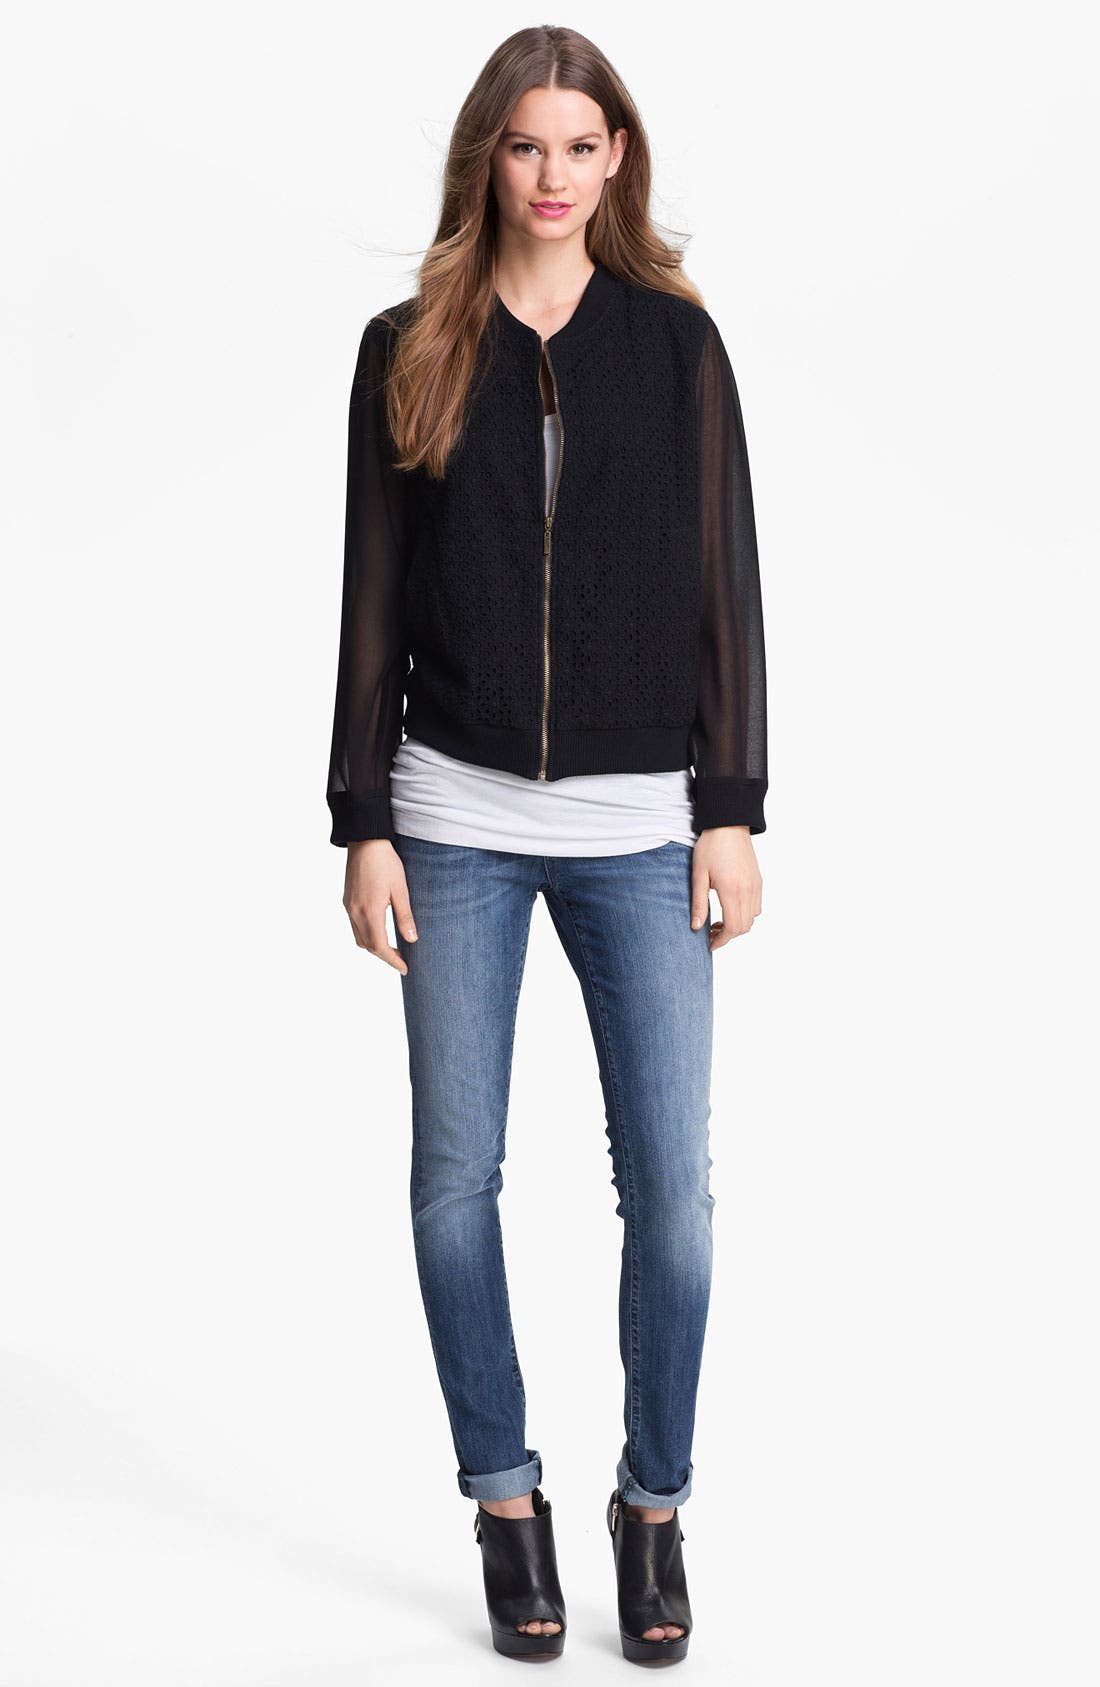 Alternate Image 1 Selected - Max & Mia Chiffon Sleeve Eyelet Bomber Jacket